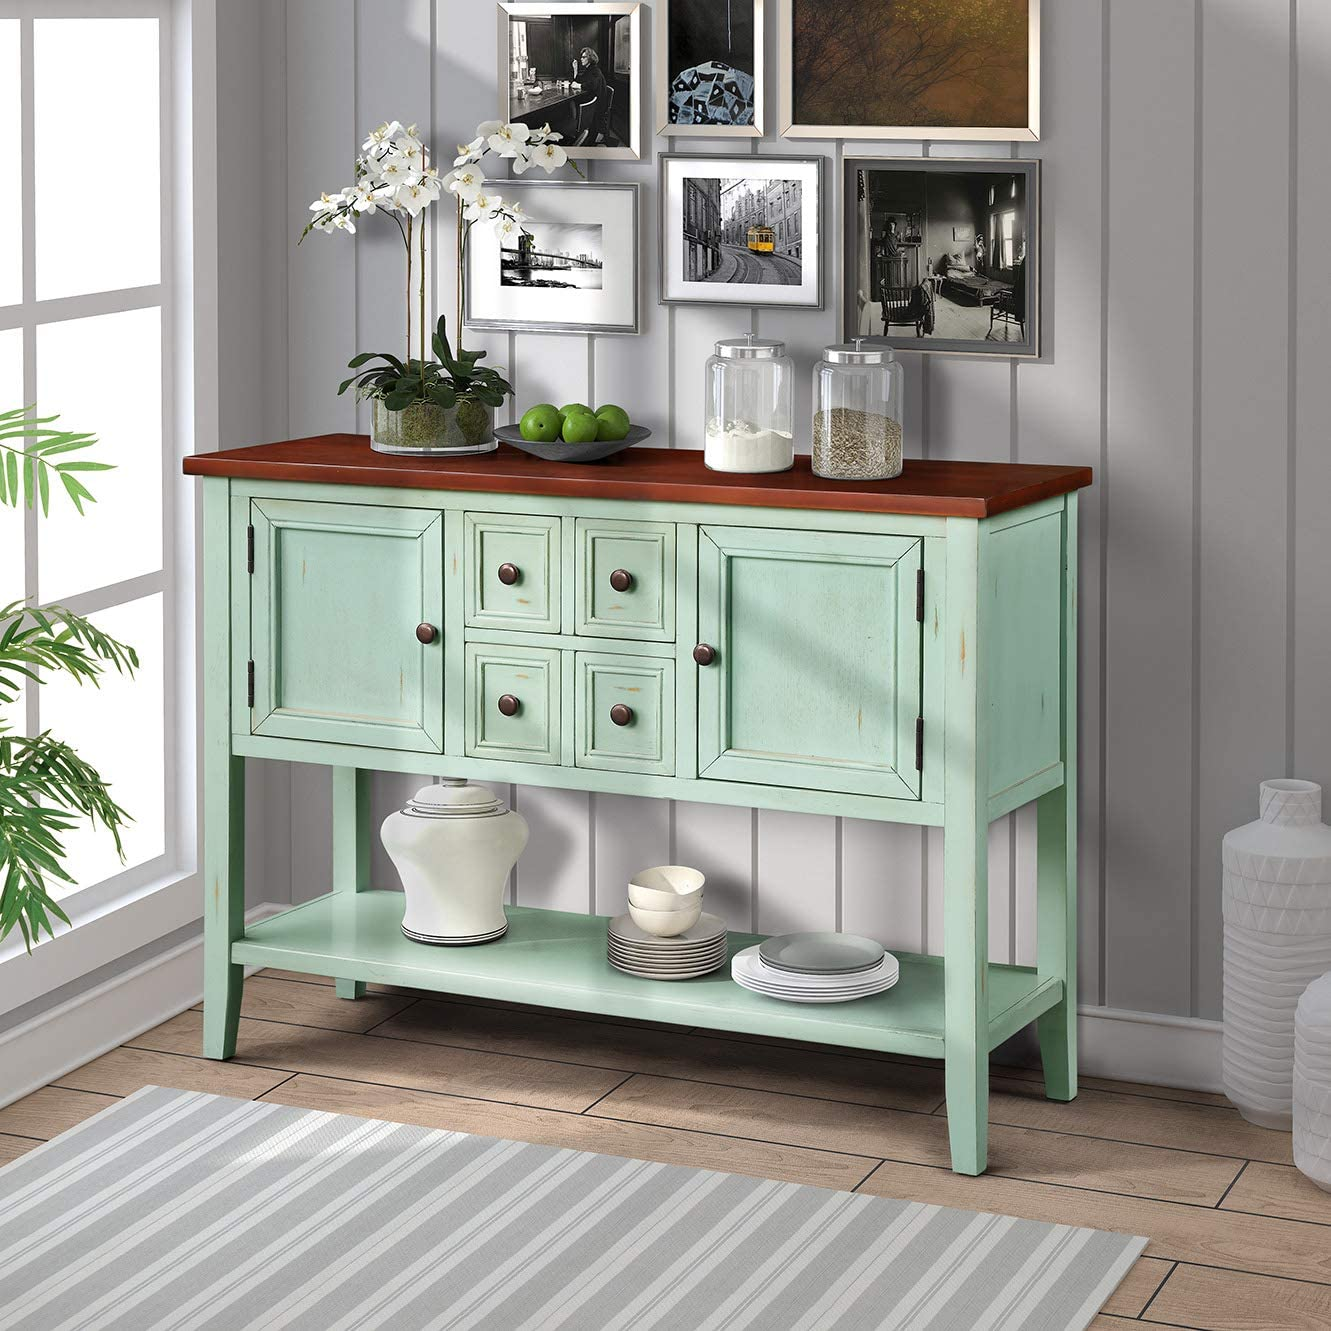 HM HOME Console Table Buffet Table, Sofa Table Sideboard with 4 Storage Drawers 2 Cabinets and Bottom Shelf for Entryway, Hallway and Living Room Antique Blue